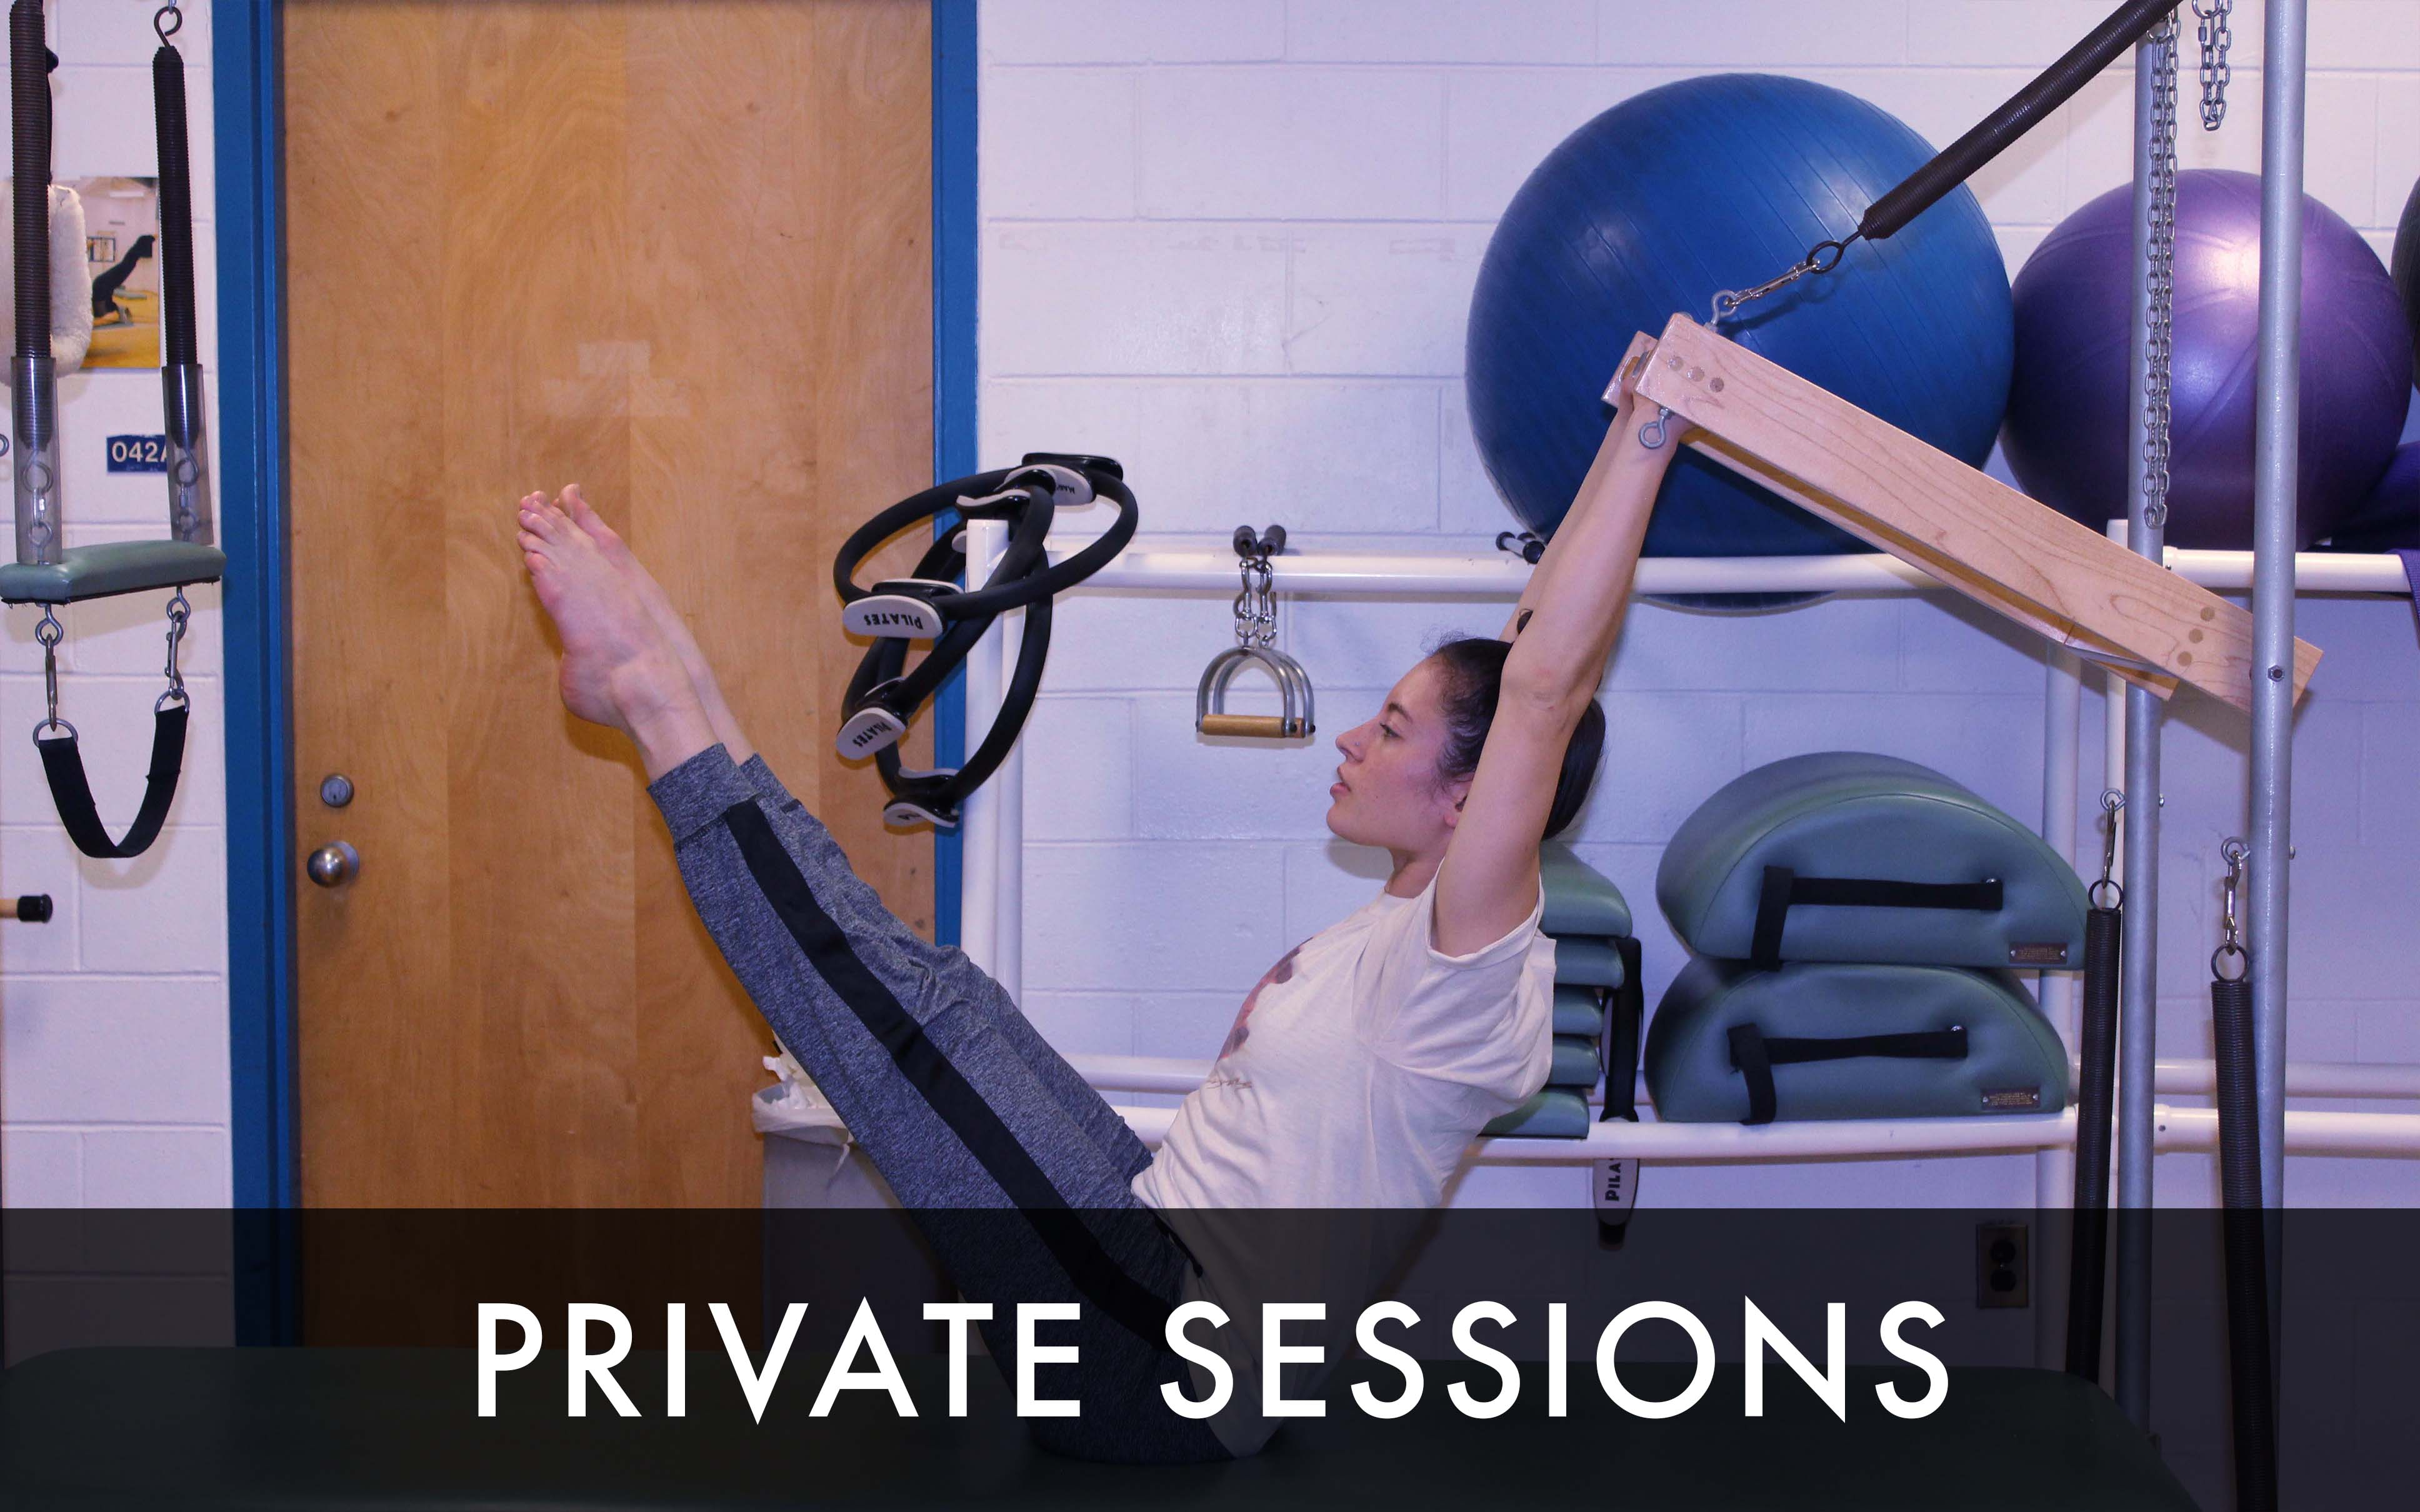 Pilates Private Sessions